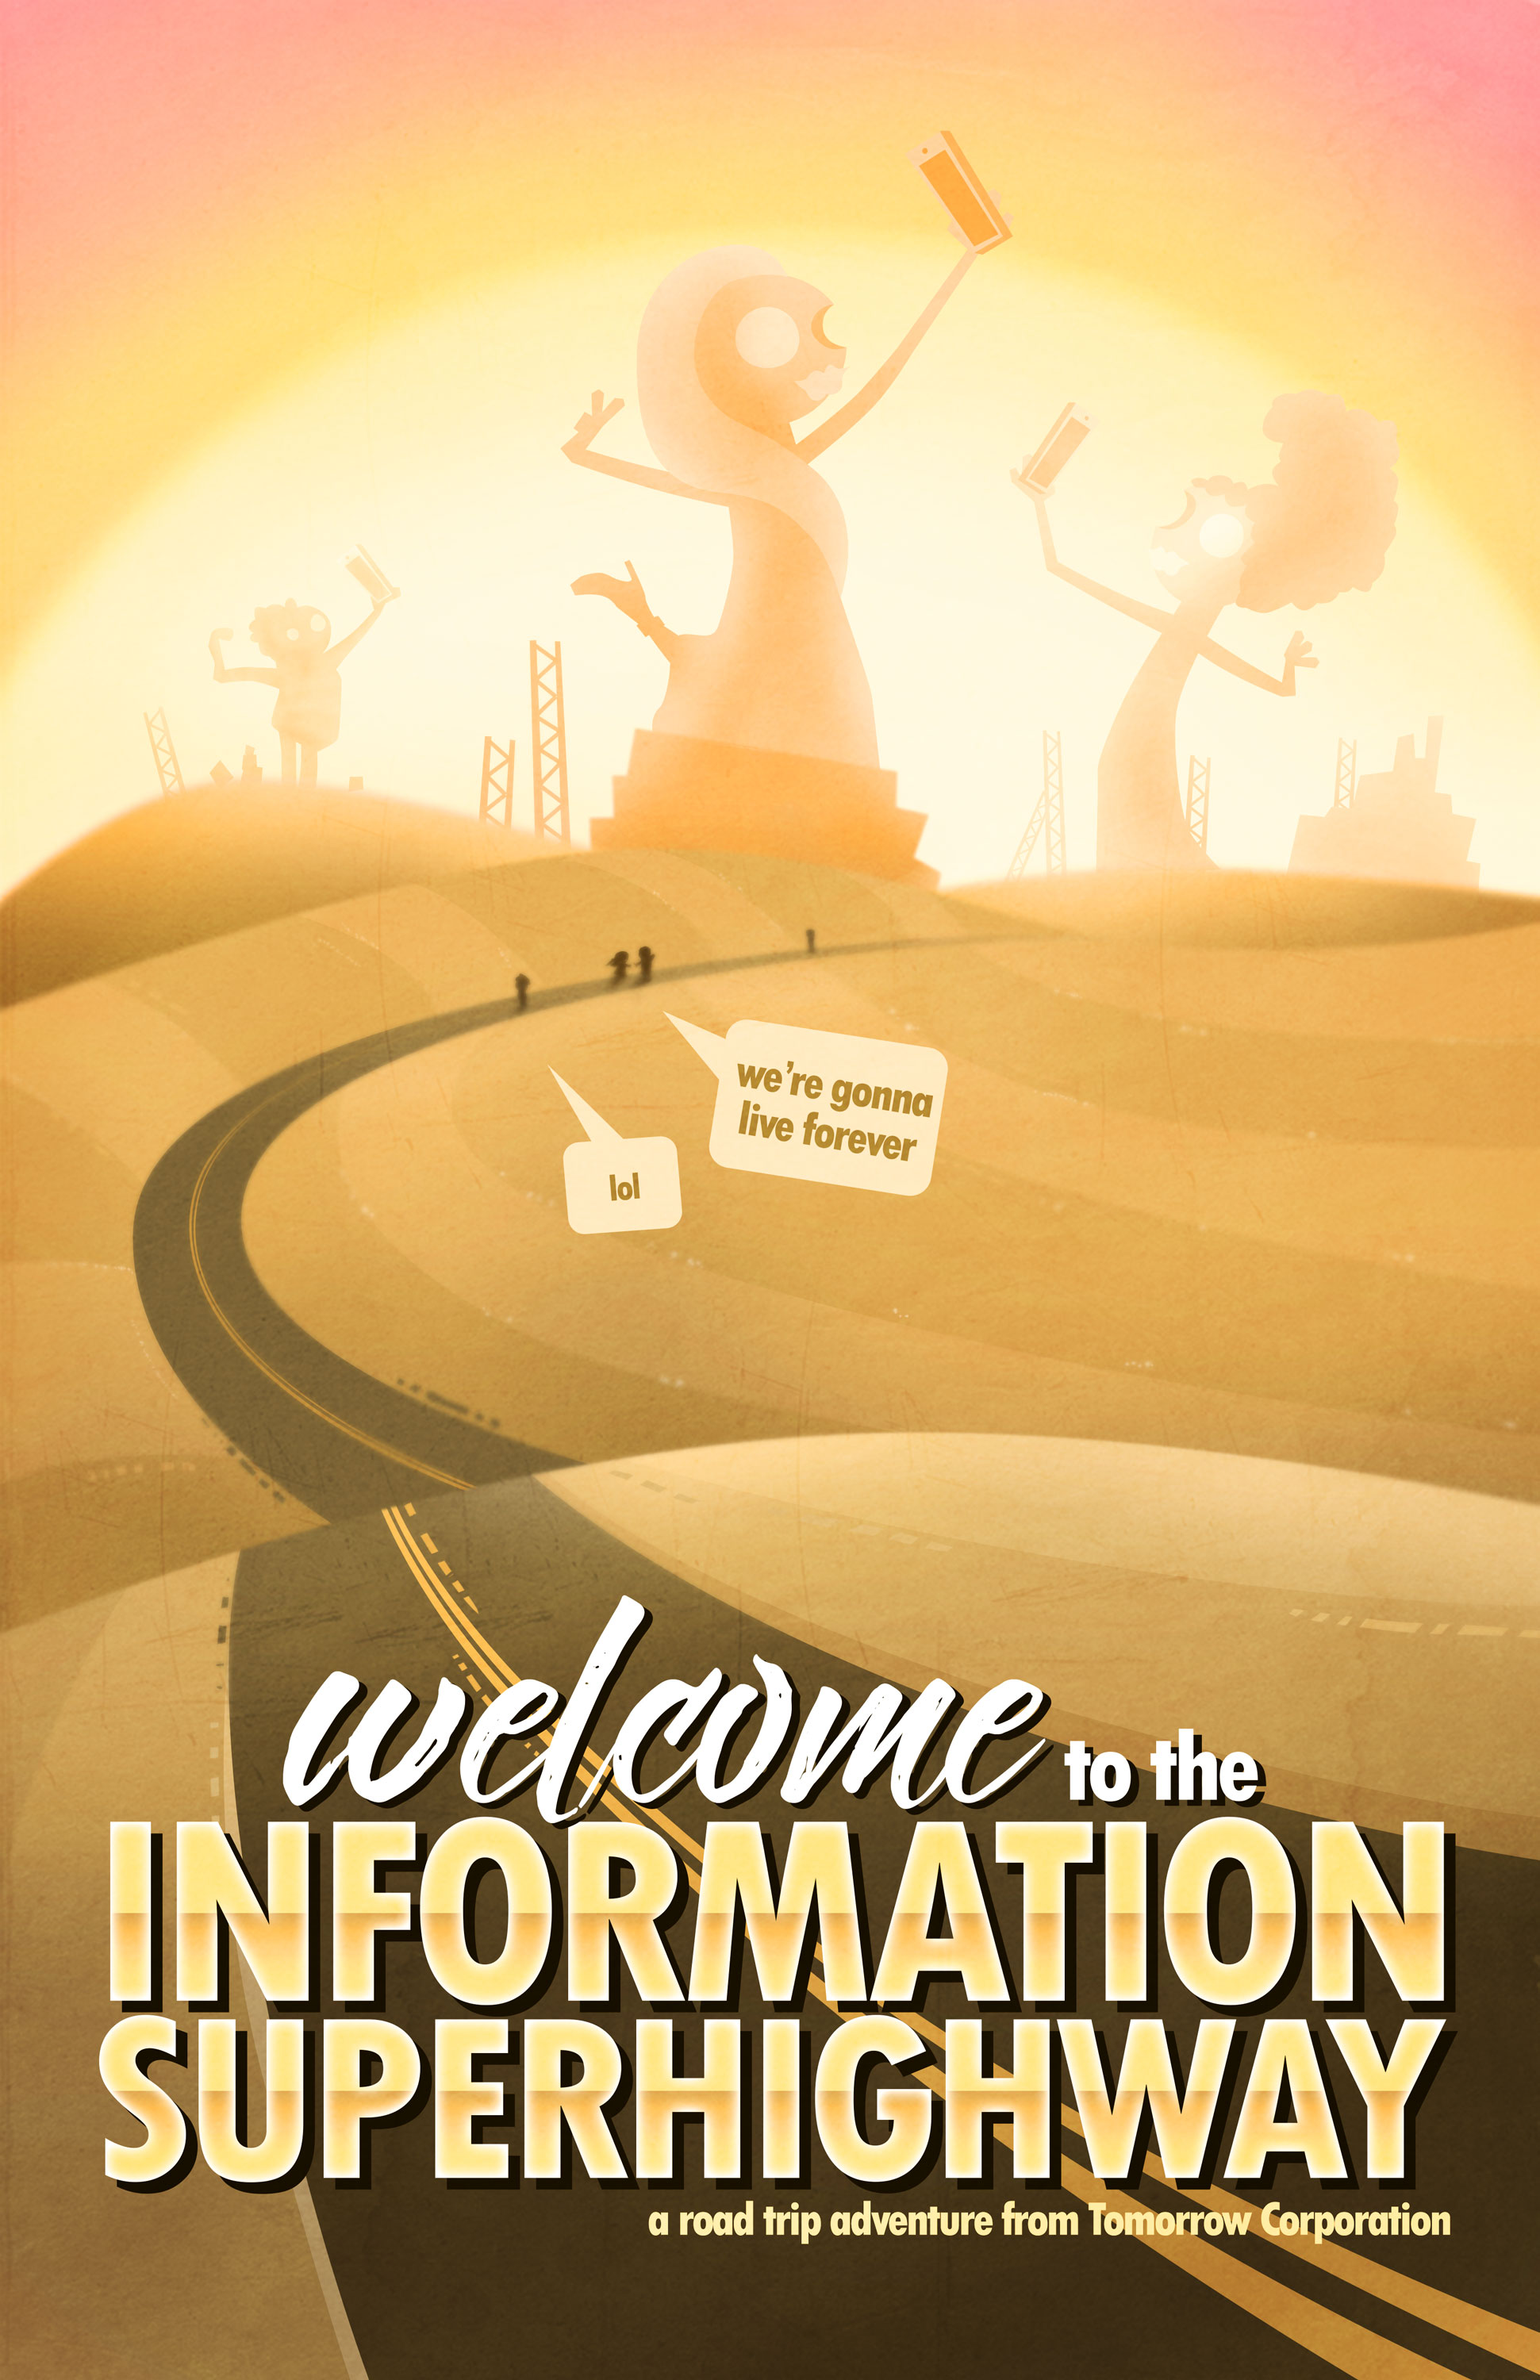 Welcome to the Information Superhighway - Yellow